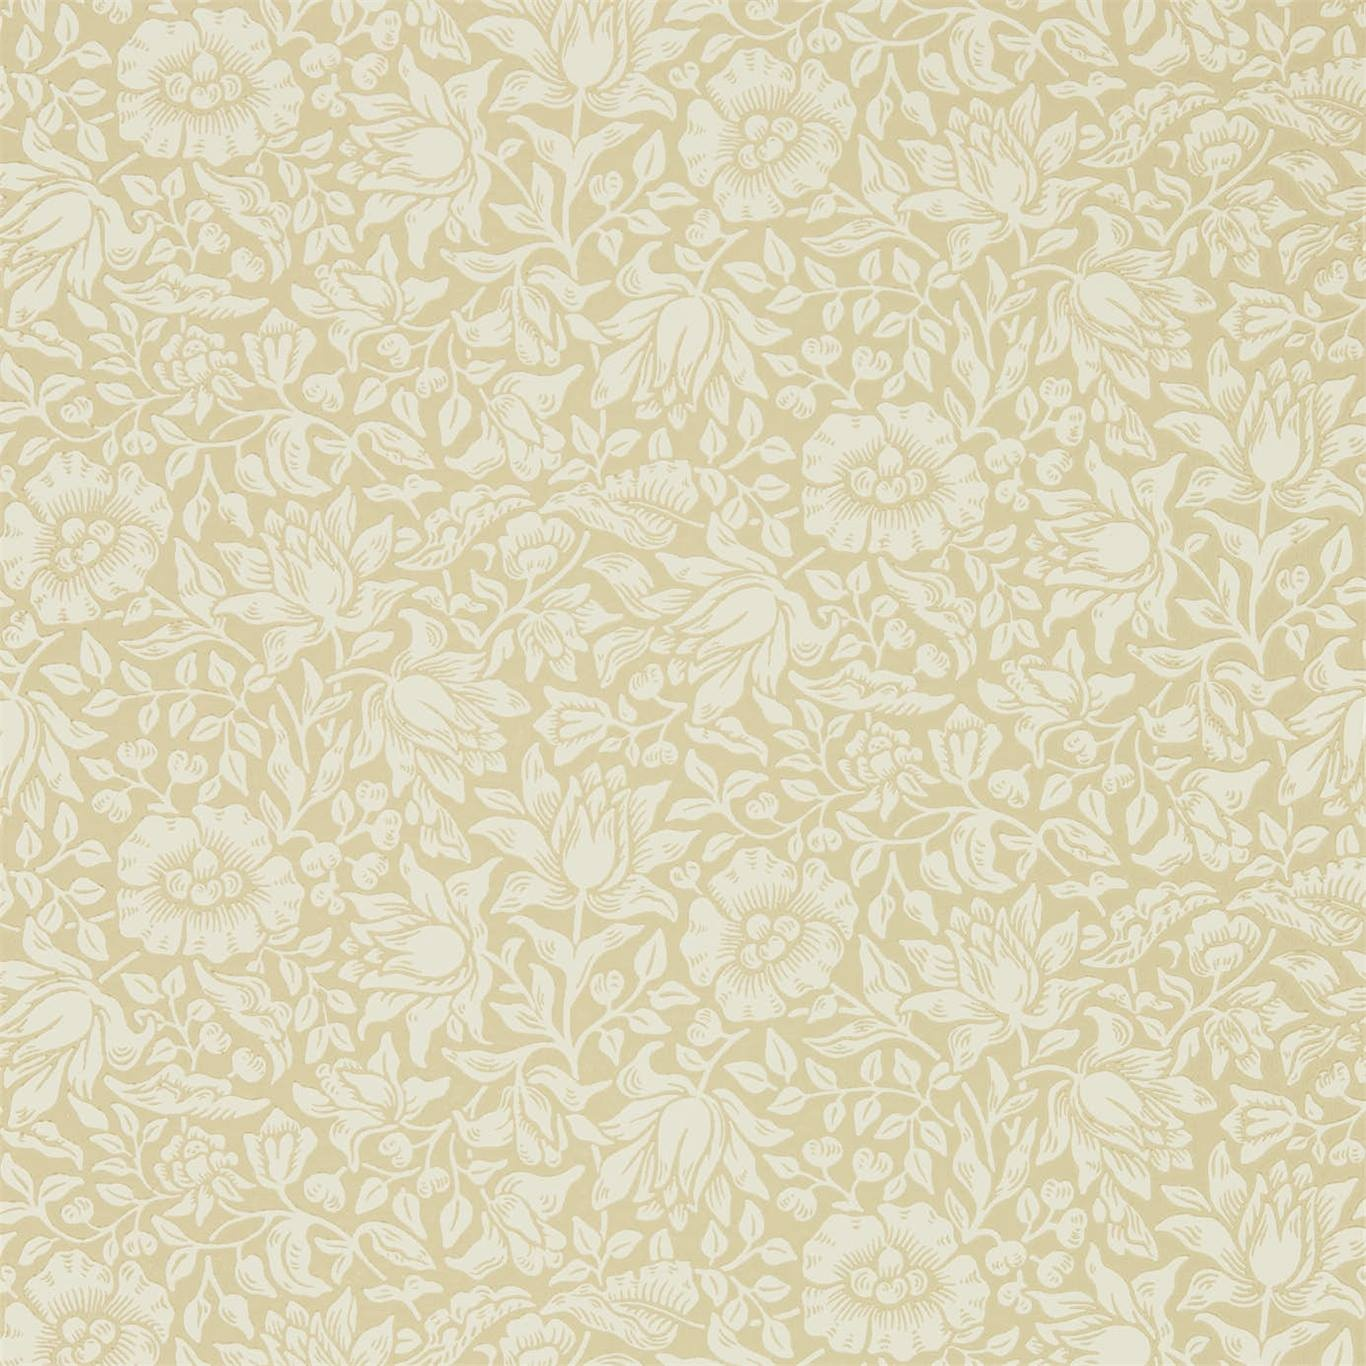 Image of Morris & Co Mallow Soft Gold Wallpaper 216677